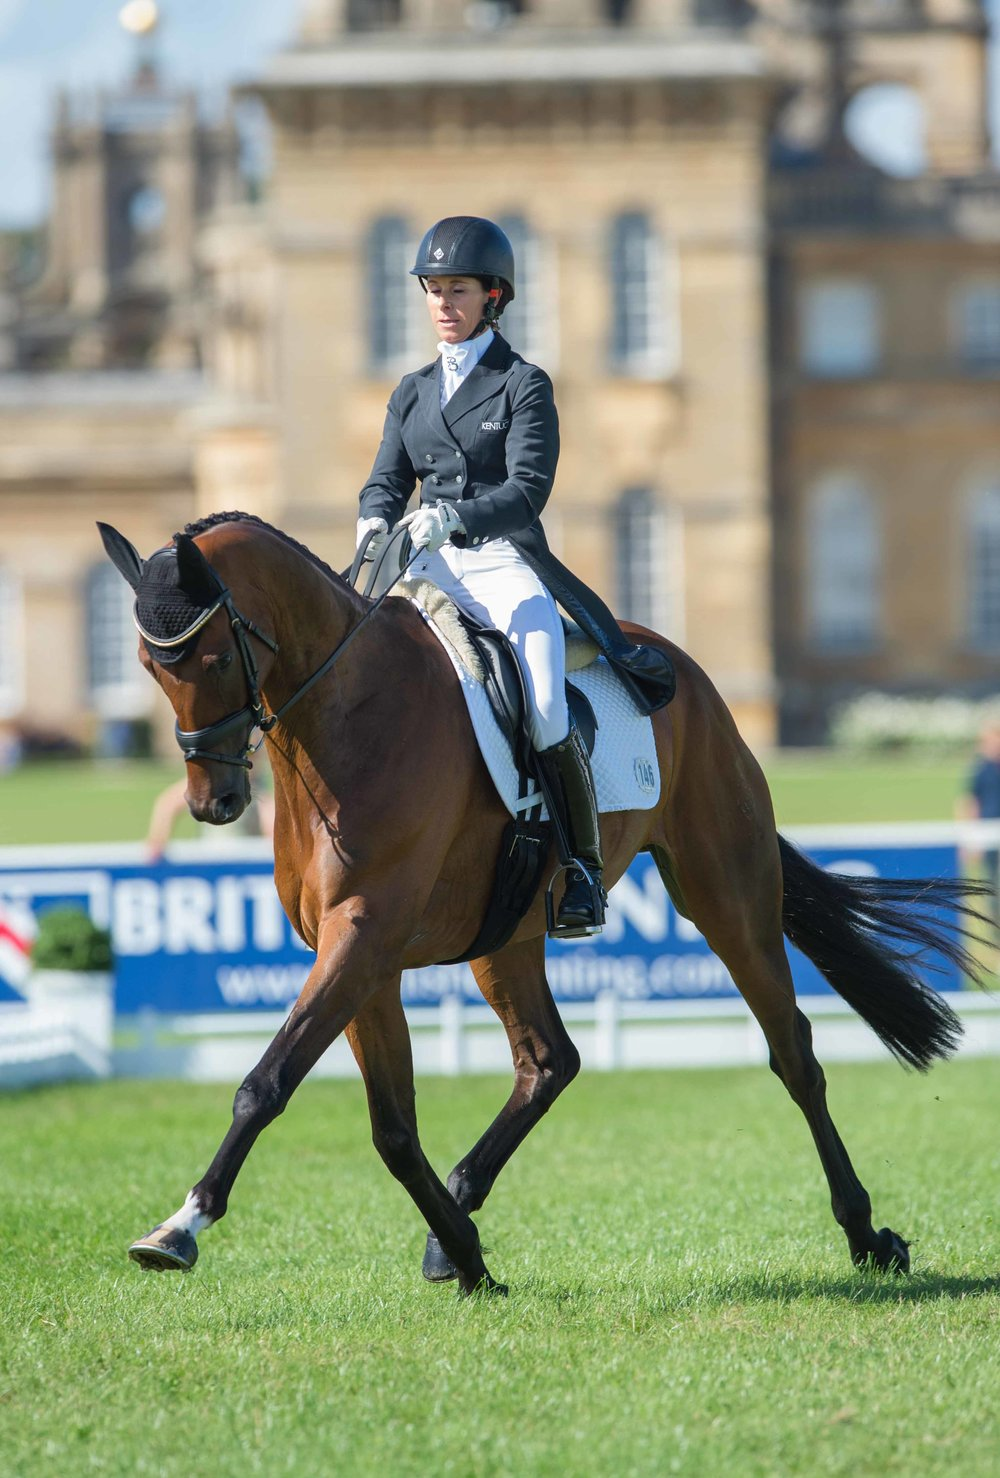 Bettina Hoy riding Seigneur Medicate (Credit: Adam Fanthorpe/Blenheim Palace International Horse Trials)